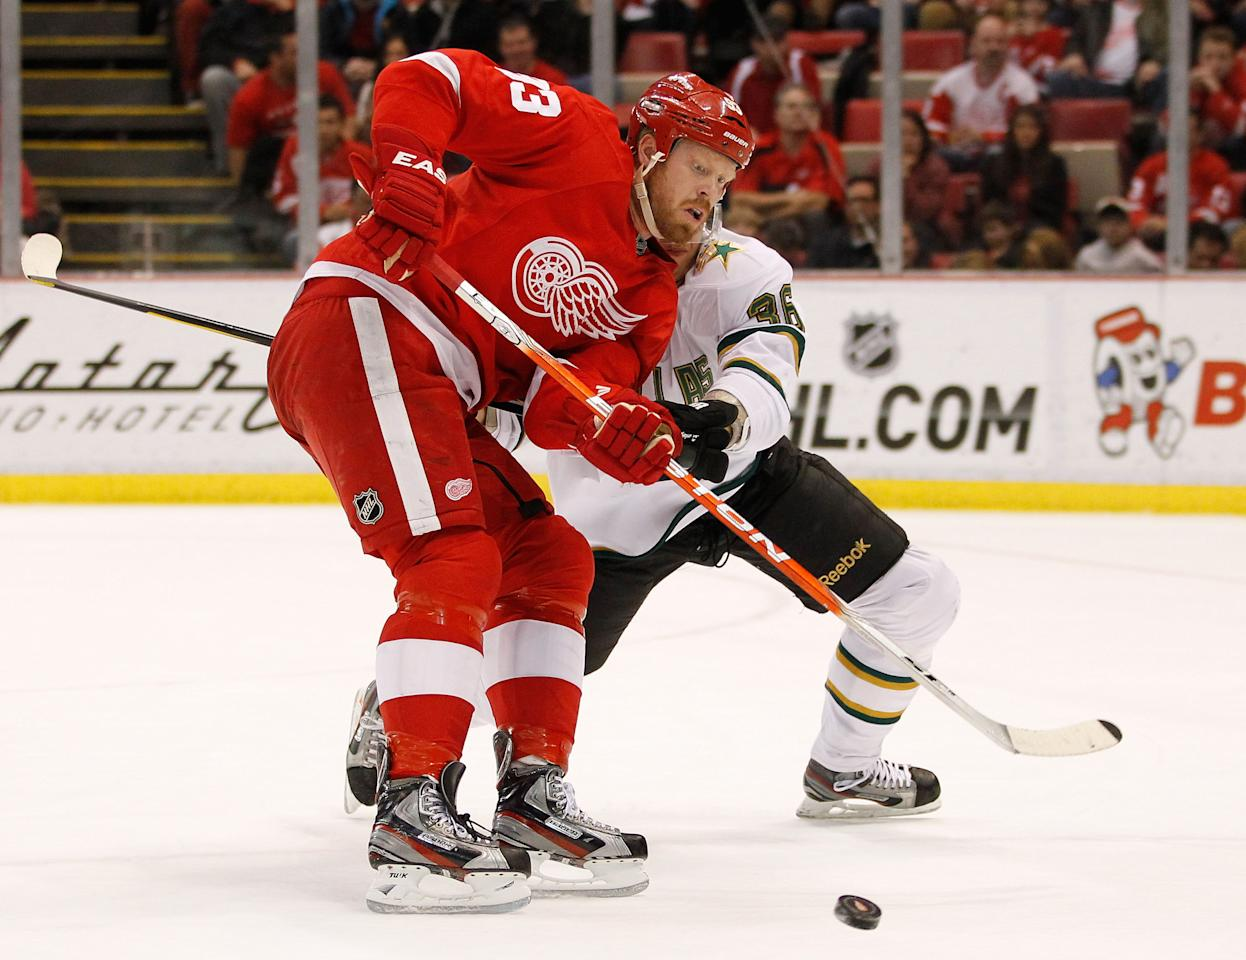 DETROIT, MI - FEBRUARY 14: Johan Franzen #93 of the Detroit Red Wings tries to control the puck in front of Philip Larsen #36 of the Dallas Stars at Joe Louis Arena on February 14, 2012 in Detroit, Michigan. (Photo by Gregory Shamus/Getty Images)